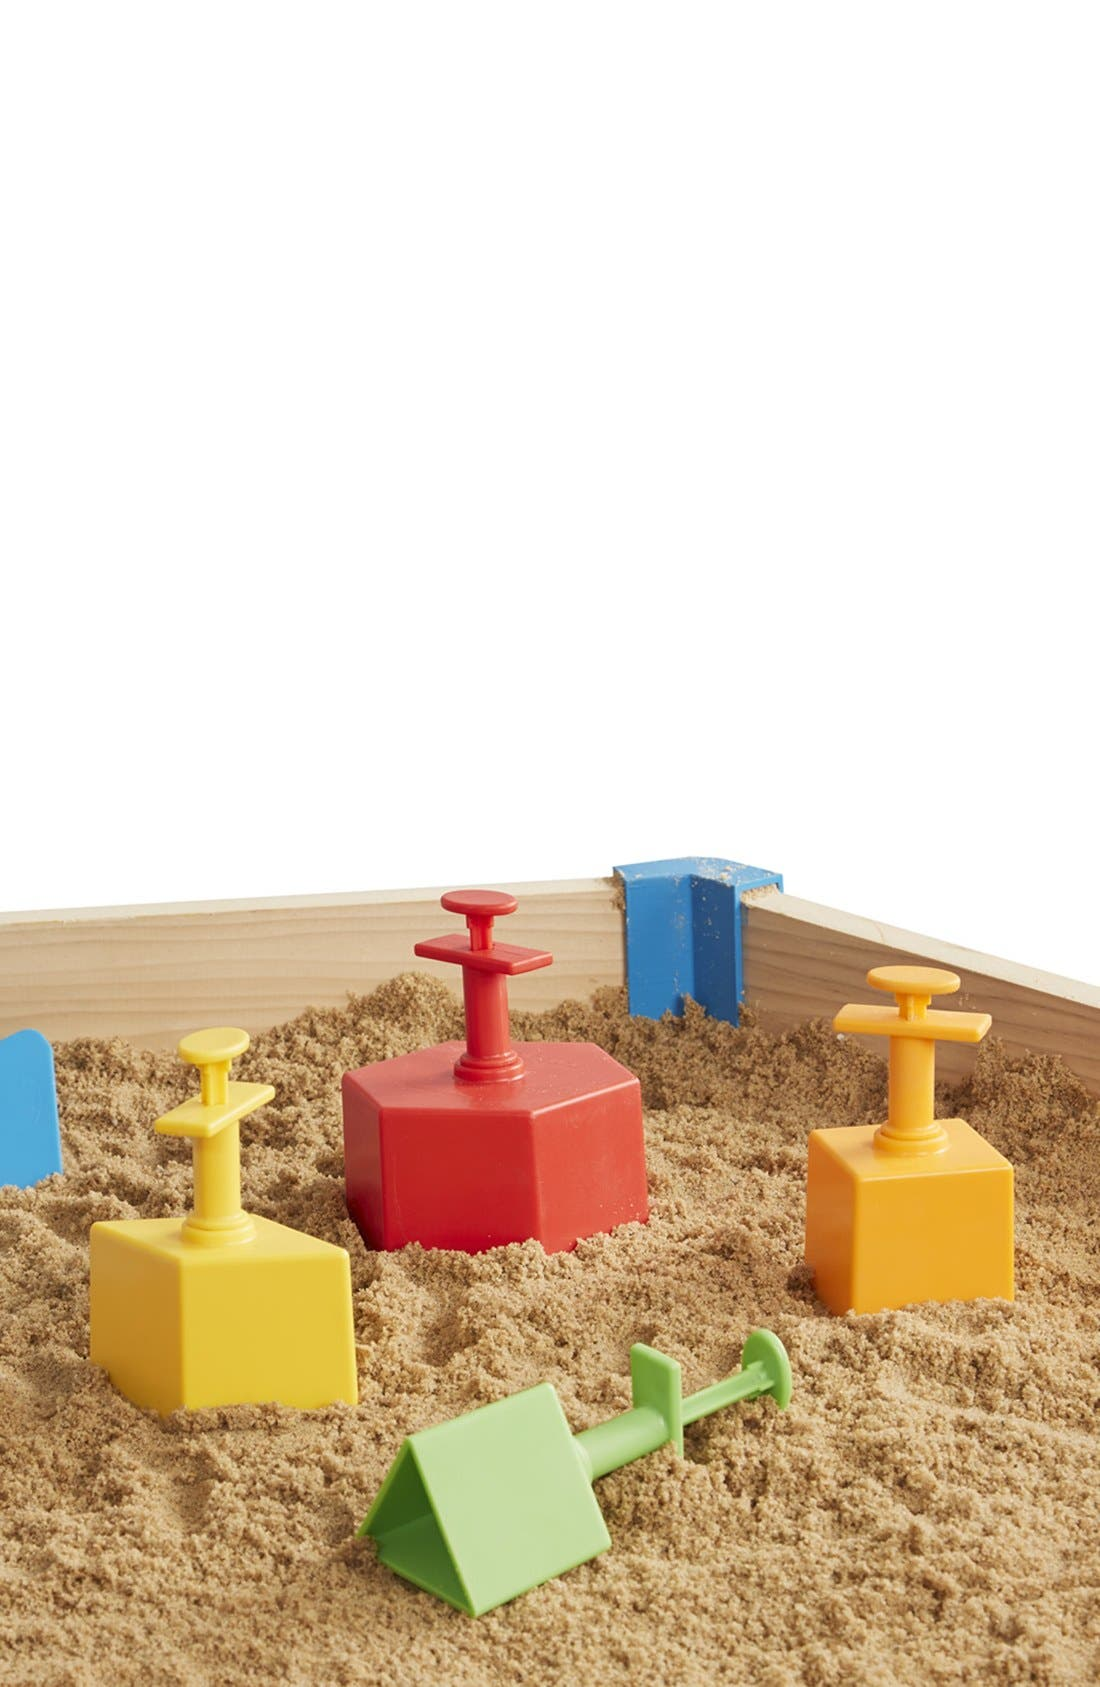 Alternate Image 1 Selected - Melissa & Doug 'SandBlox' Sand Box Set